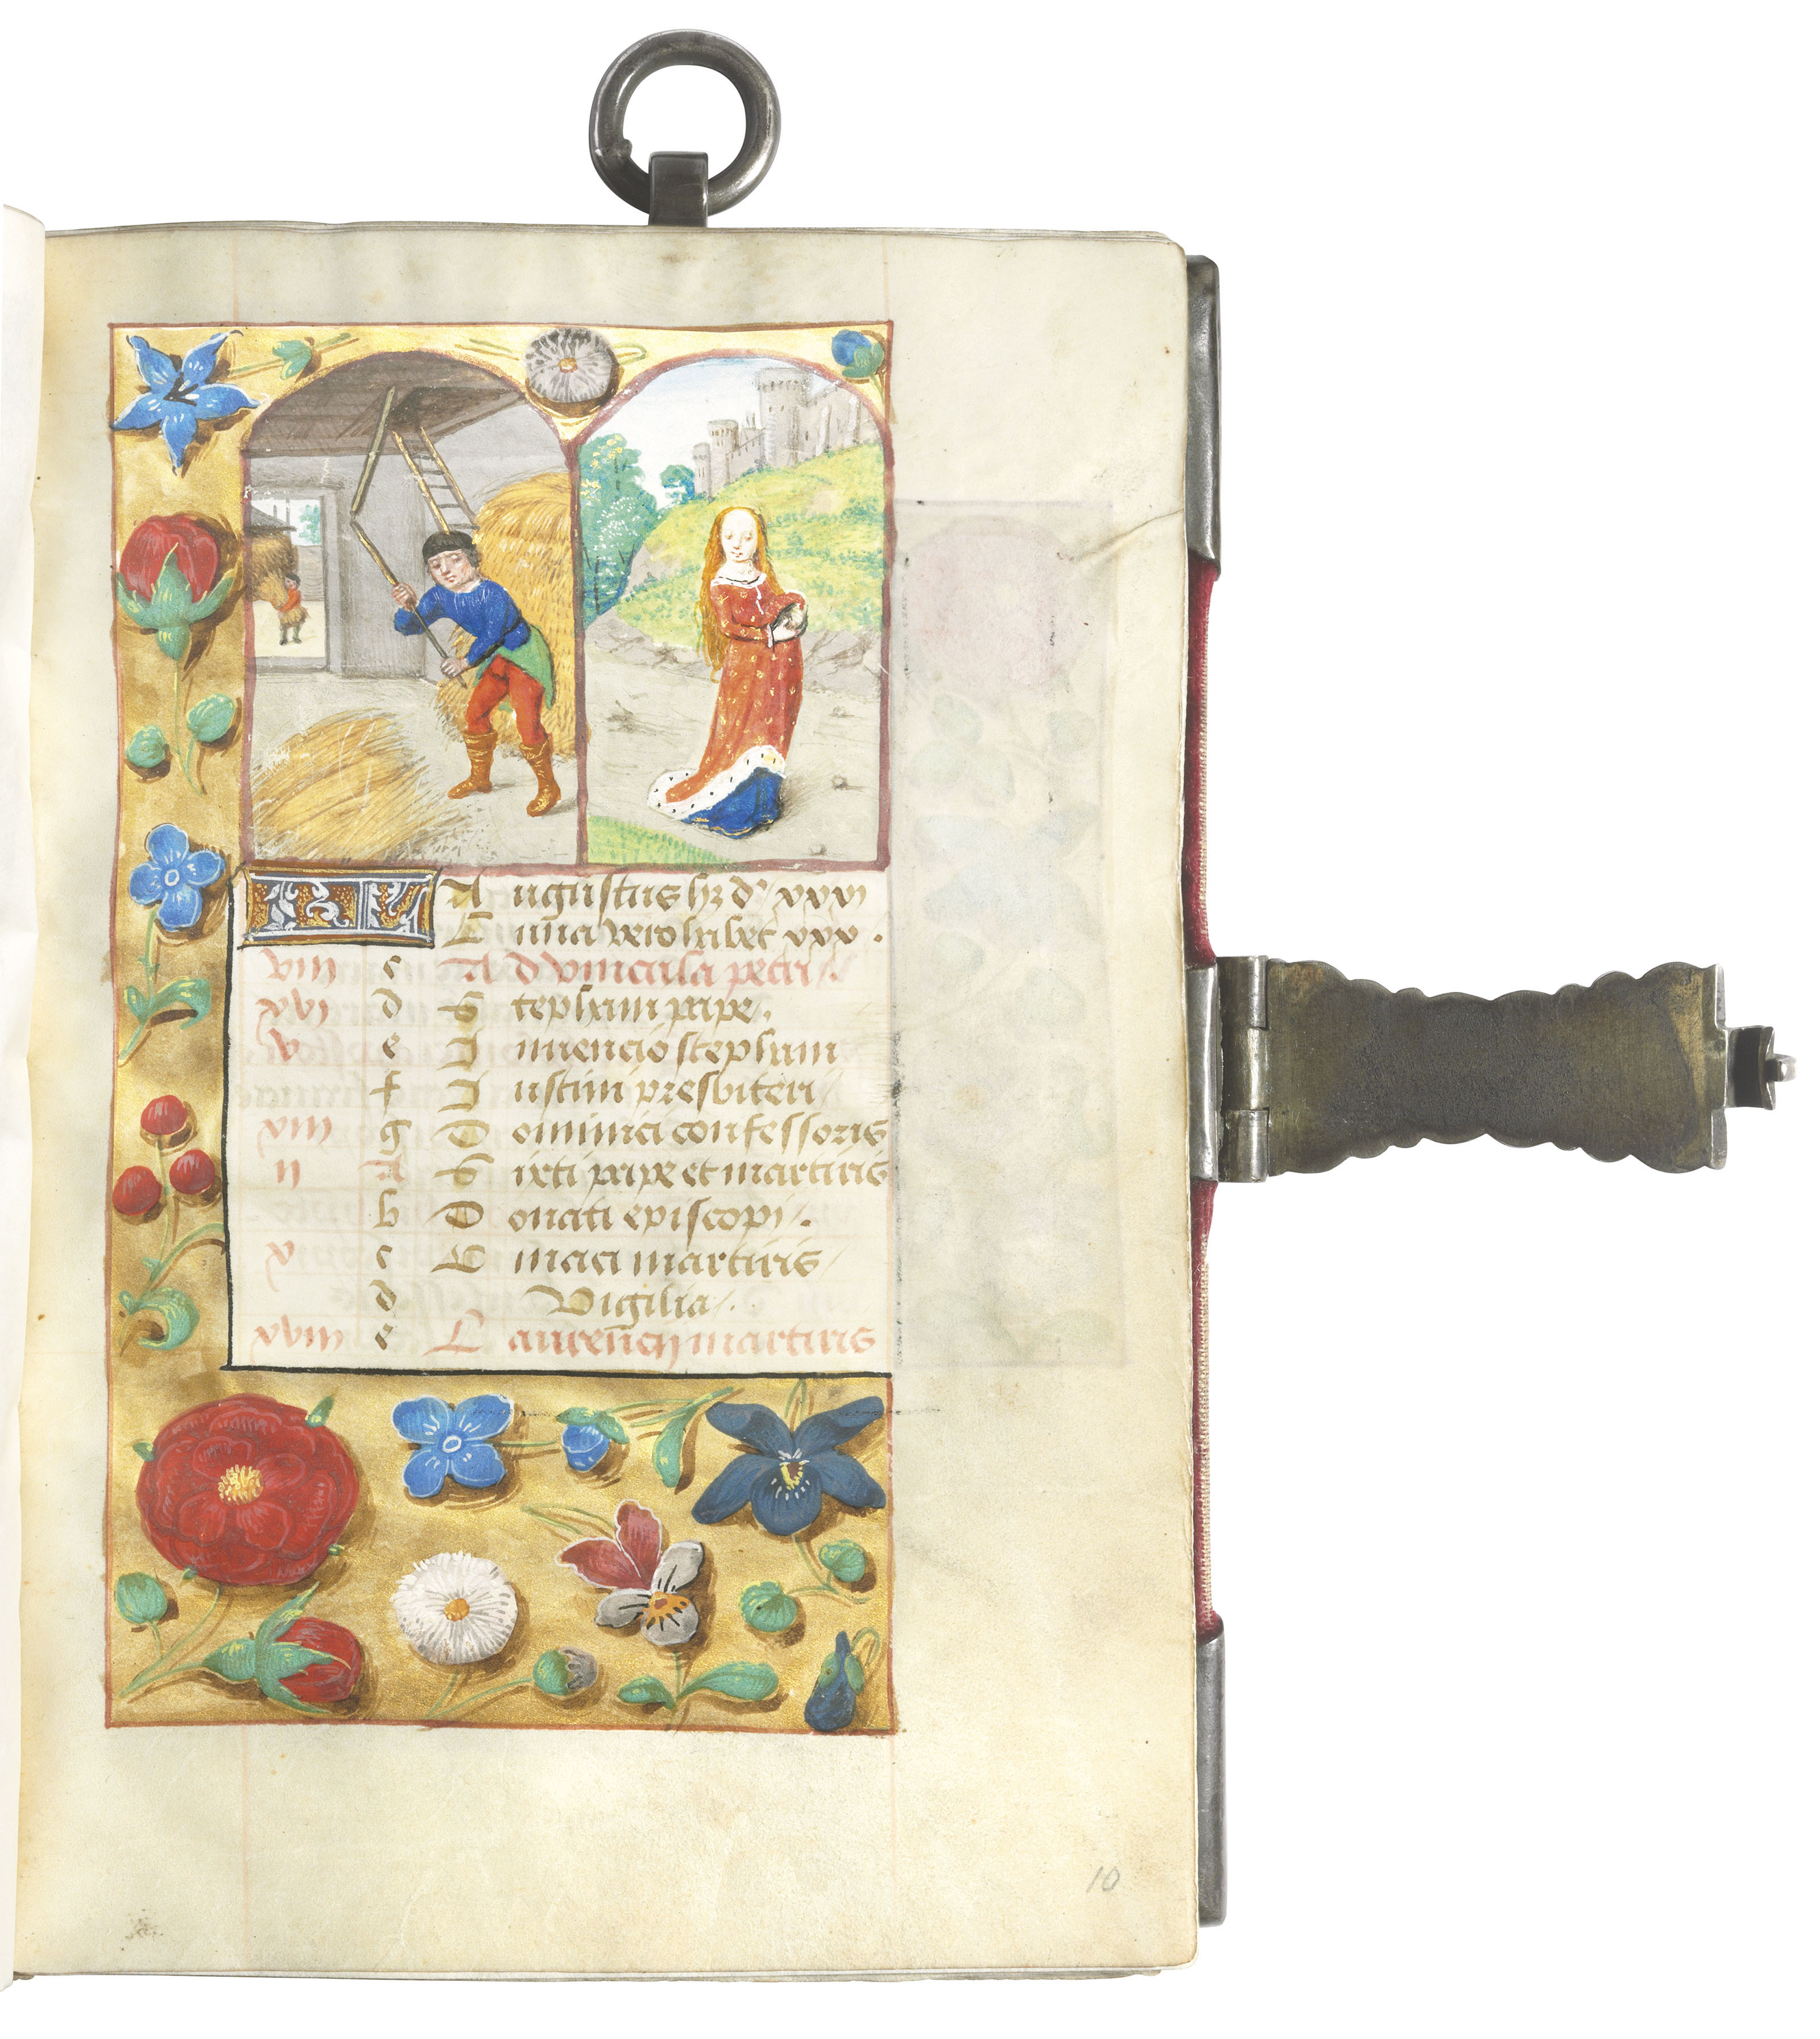 BOOK OF HOURS, use of Rome, in Latin, illuminated manuscript on vellum [Flanders, probably Ghent, c.1485-1490]